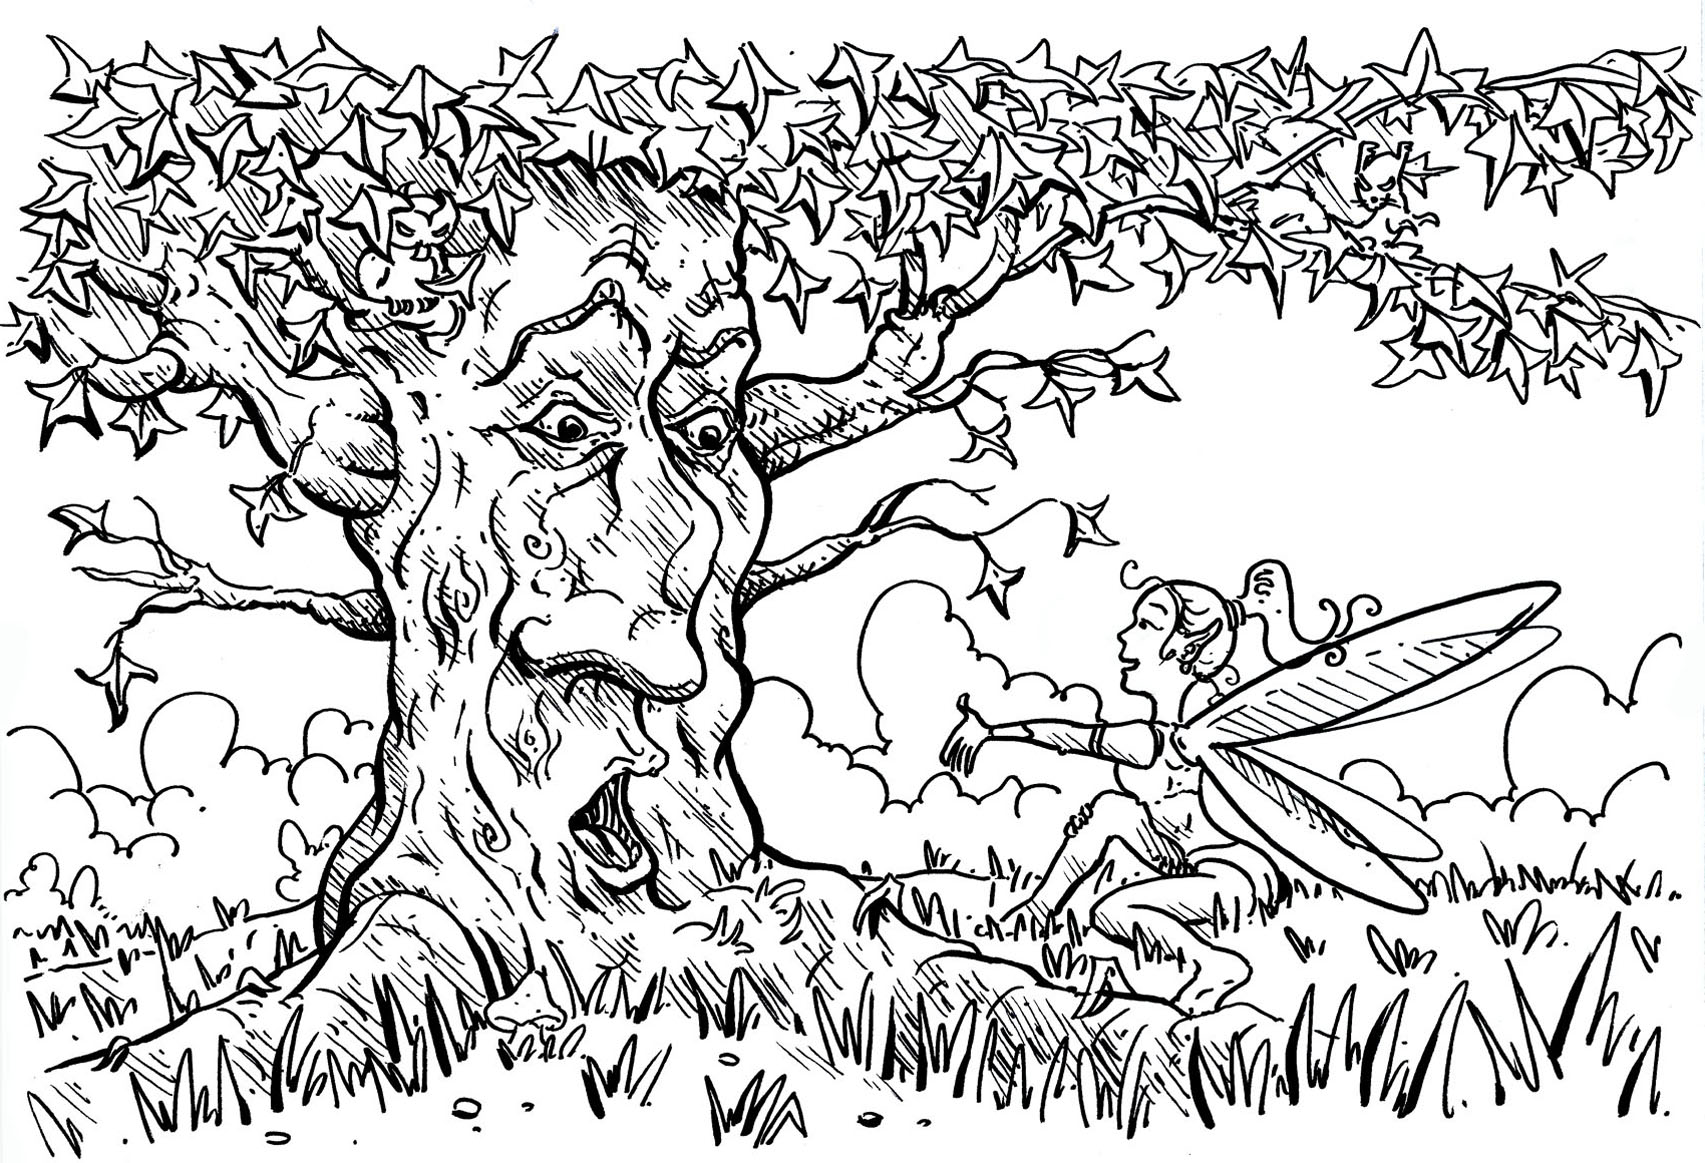 Original tree drawing, to print & color